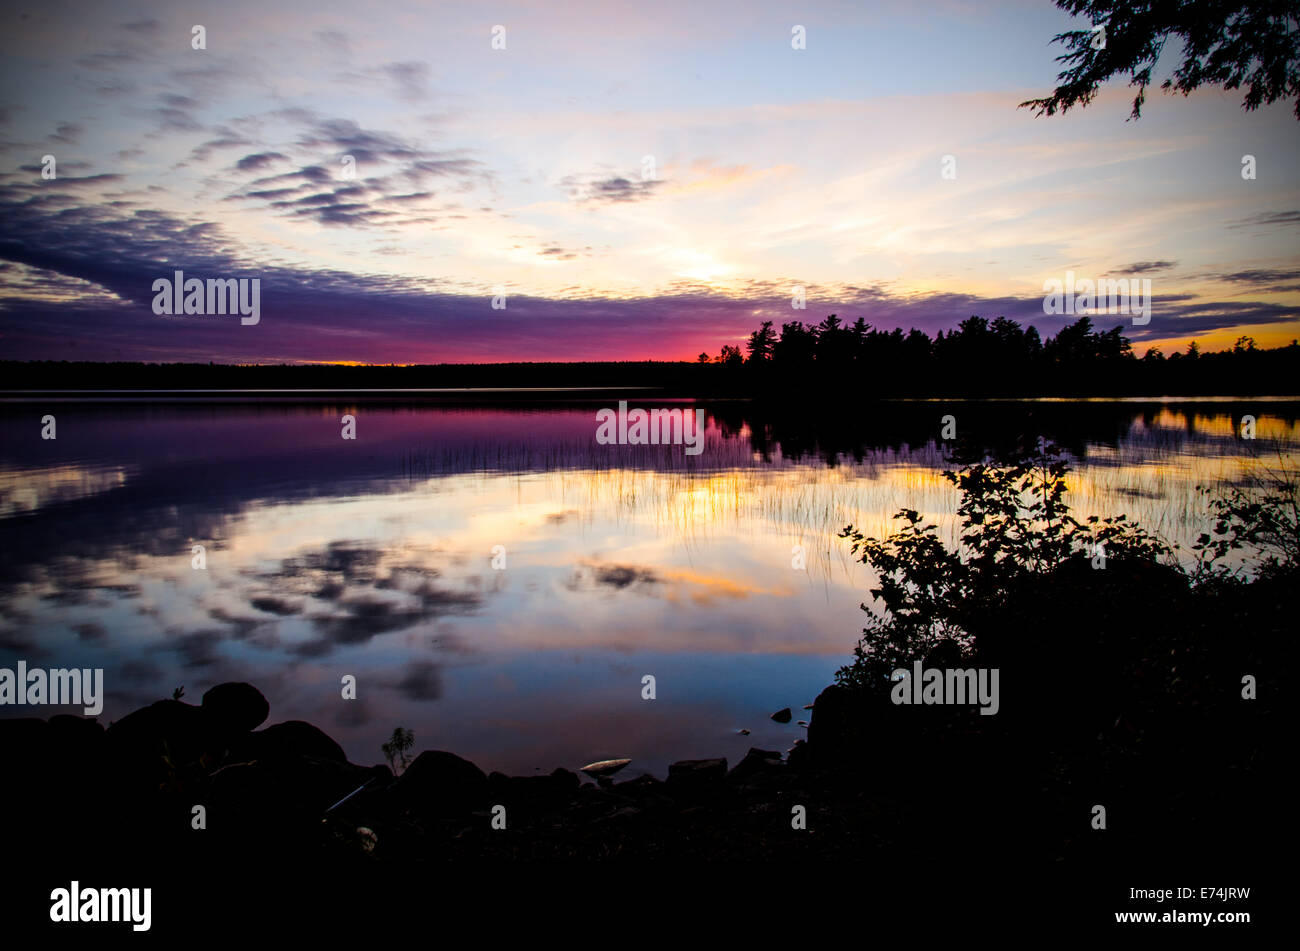 Sunset on Spectacle Pond, Osborn, Maine - Stock Image